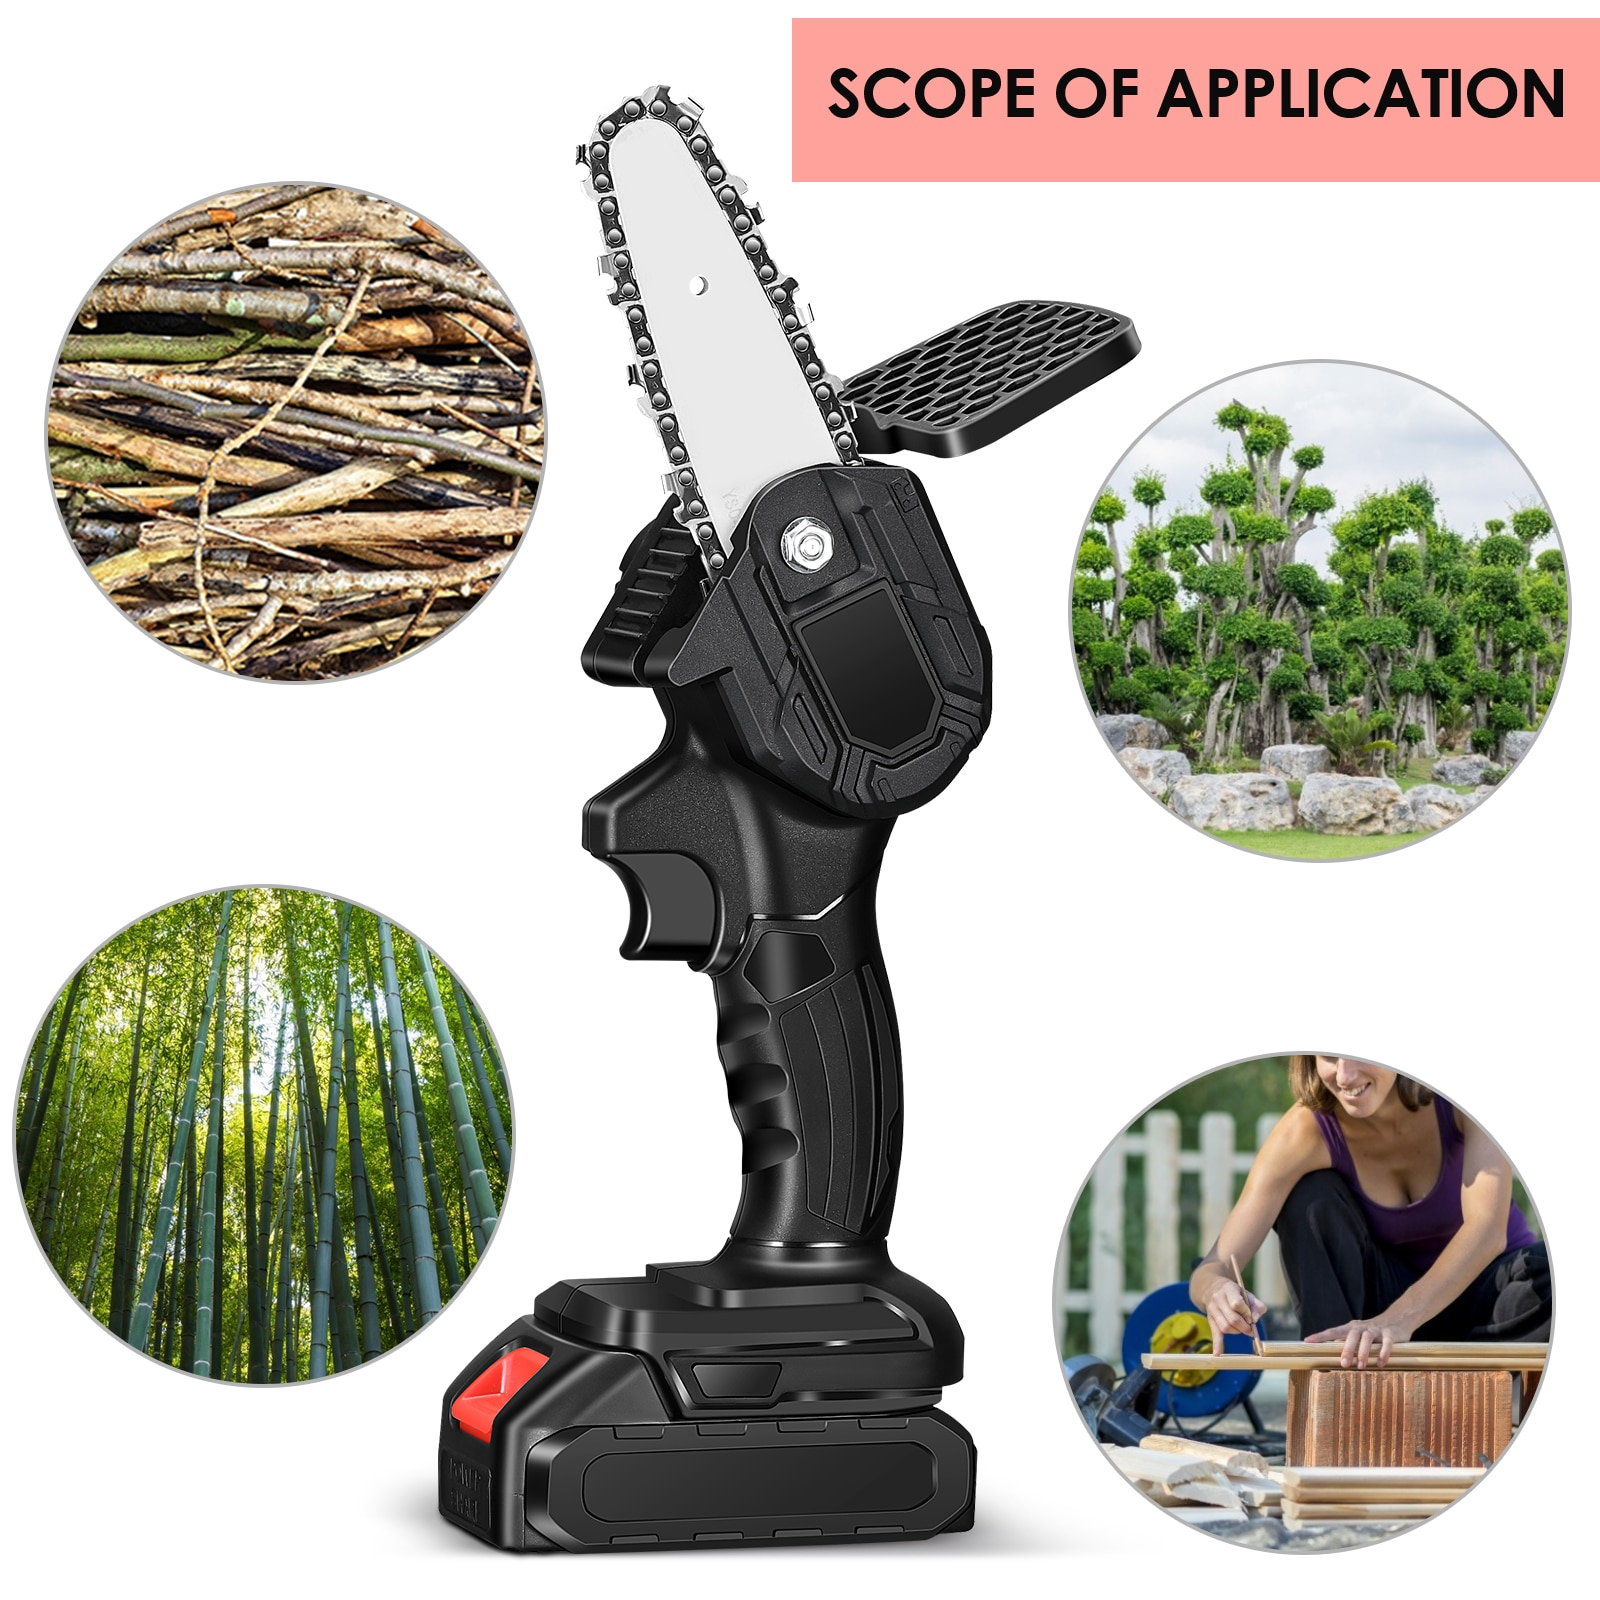 4 Inch Portable Electric Chain Saw Pruning ChainSaw Cordless Garden Tree Branch Logging Trimming Saw Woodworking Cutter Tool Kit